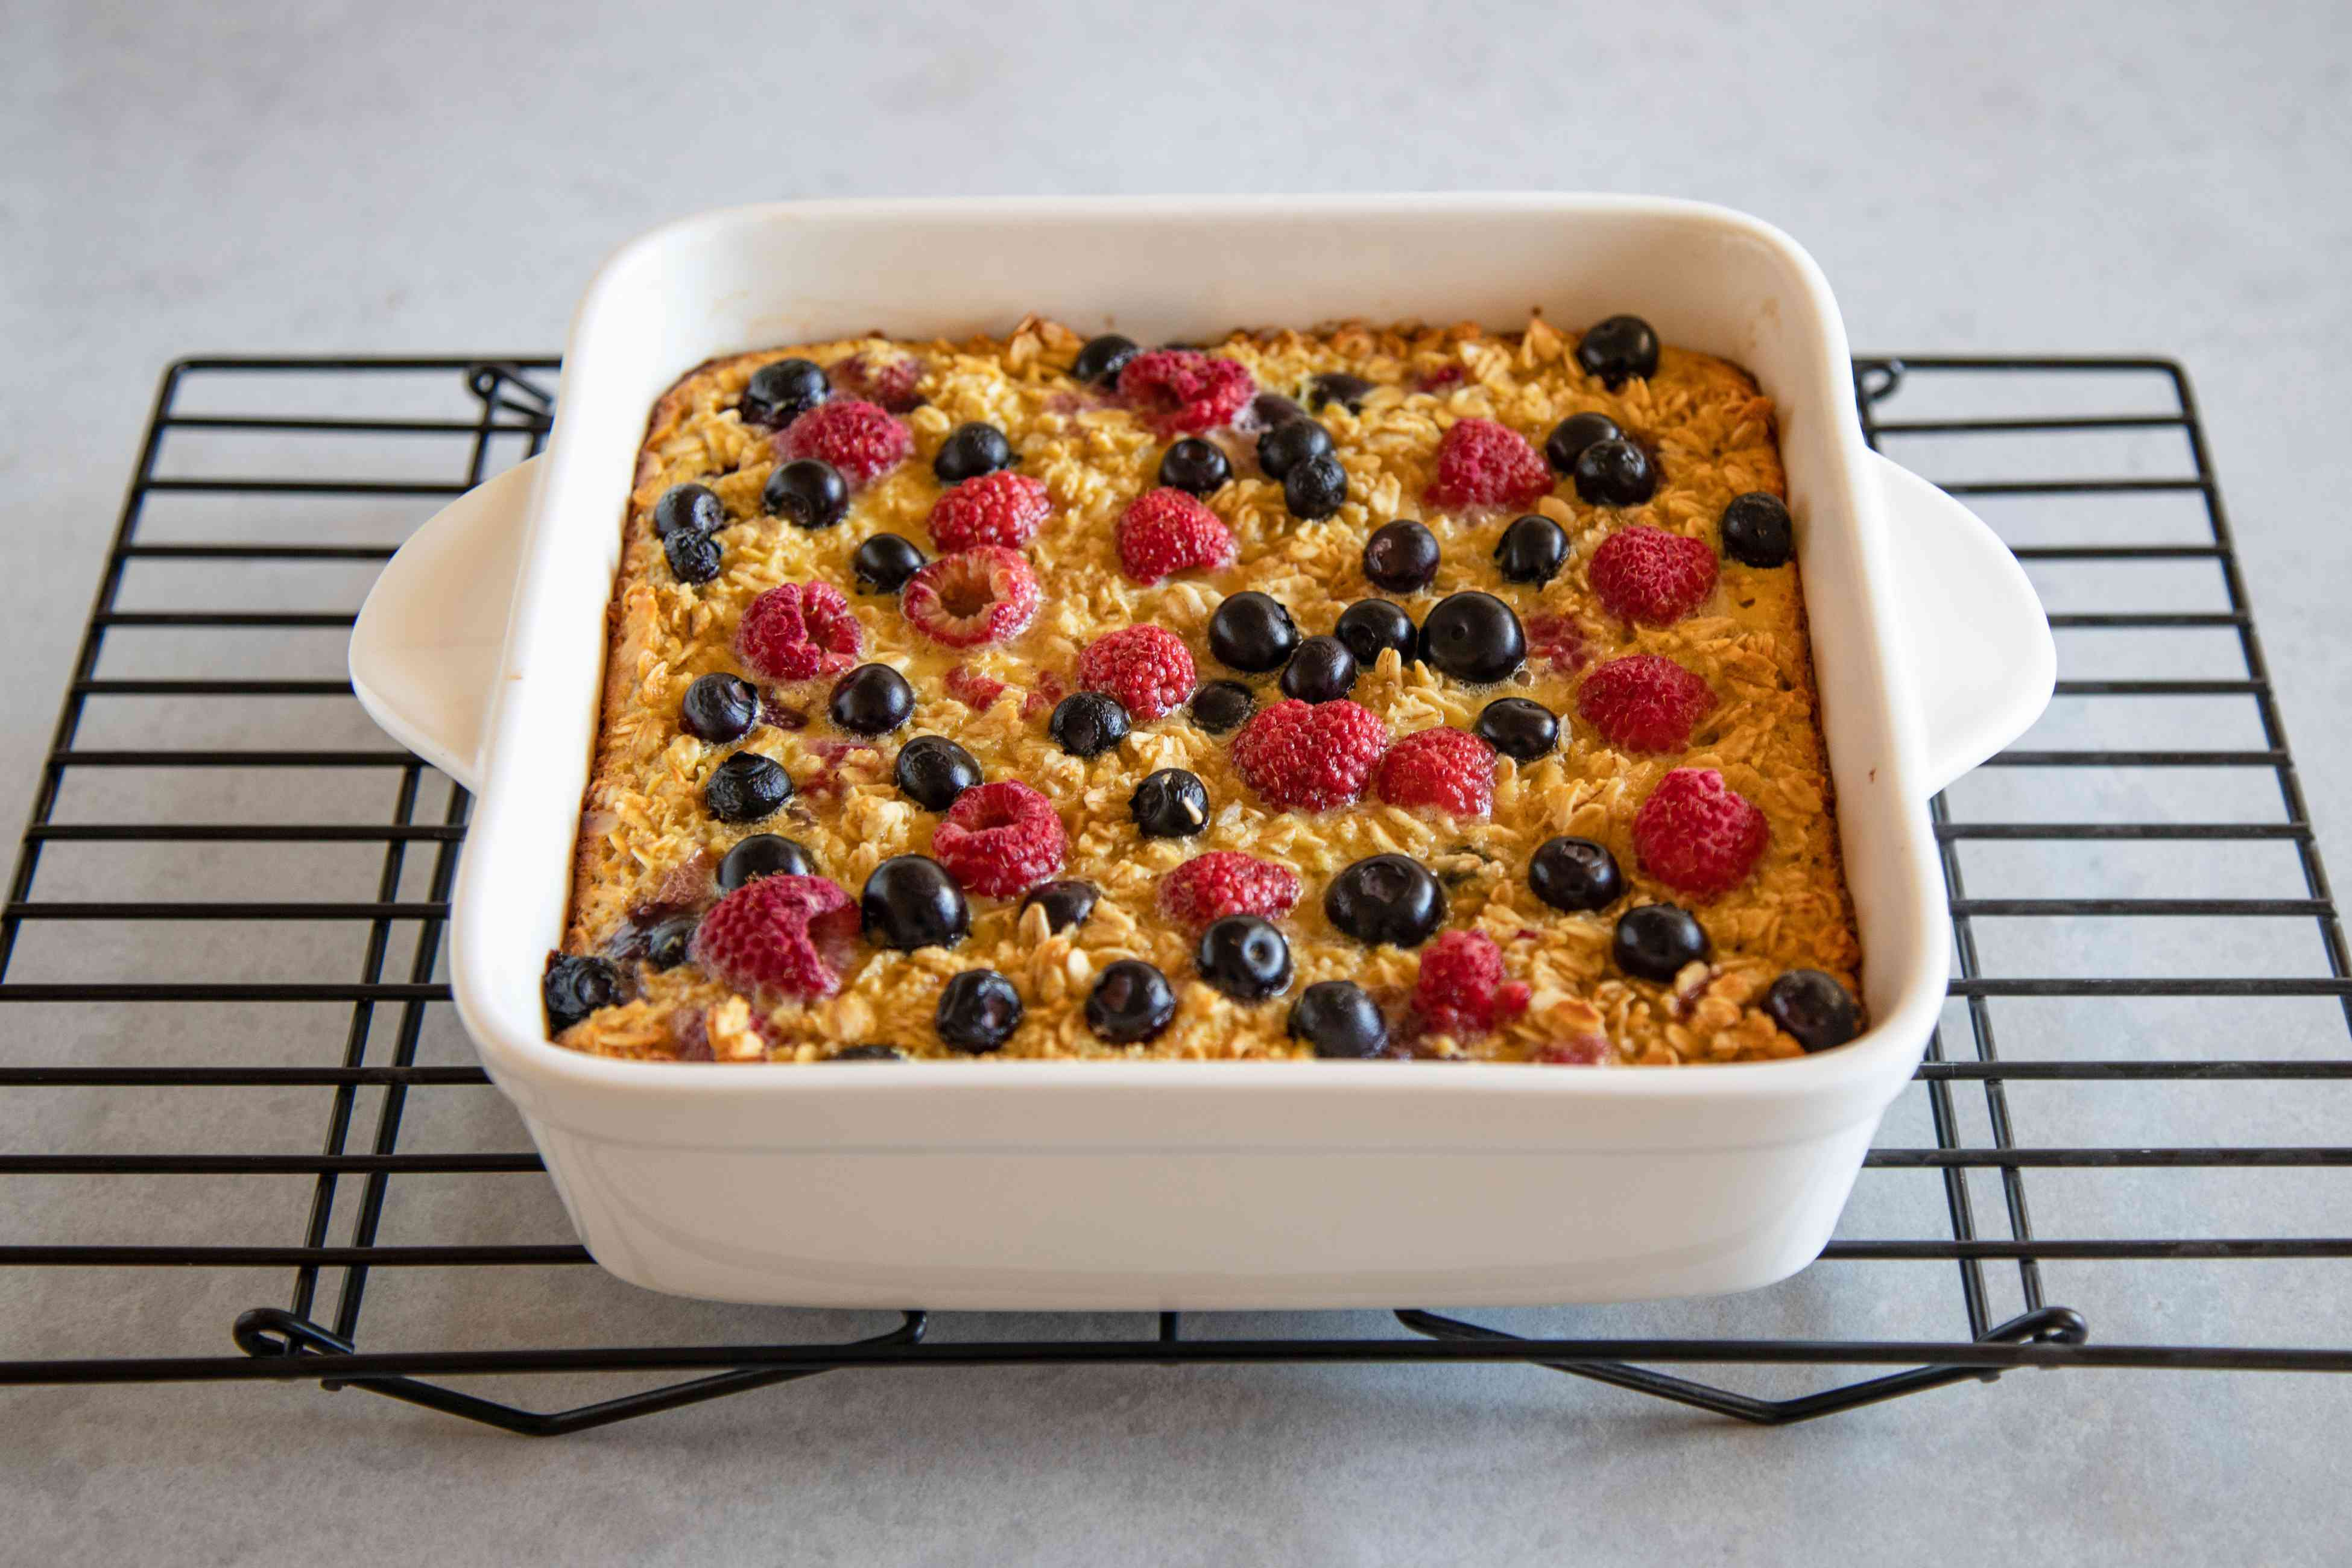 Mixed Berry Baked Oatmeal (Gluten-Free) cooling on a wire rack.